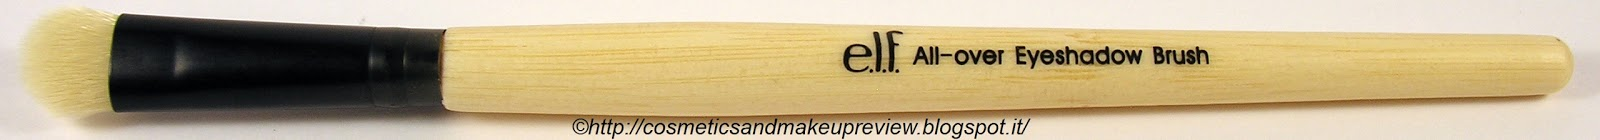 E.L.F.-All-Over-Eyeshadow-Brush-pennello